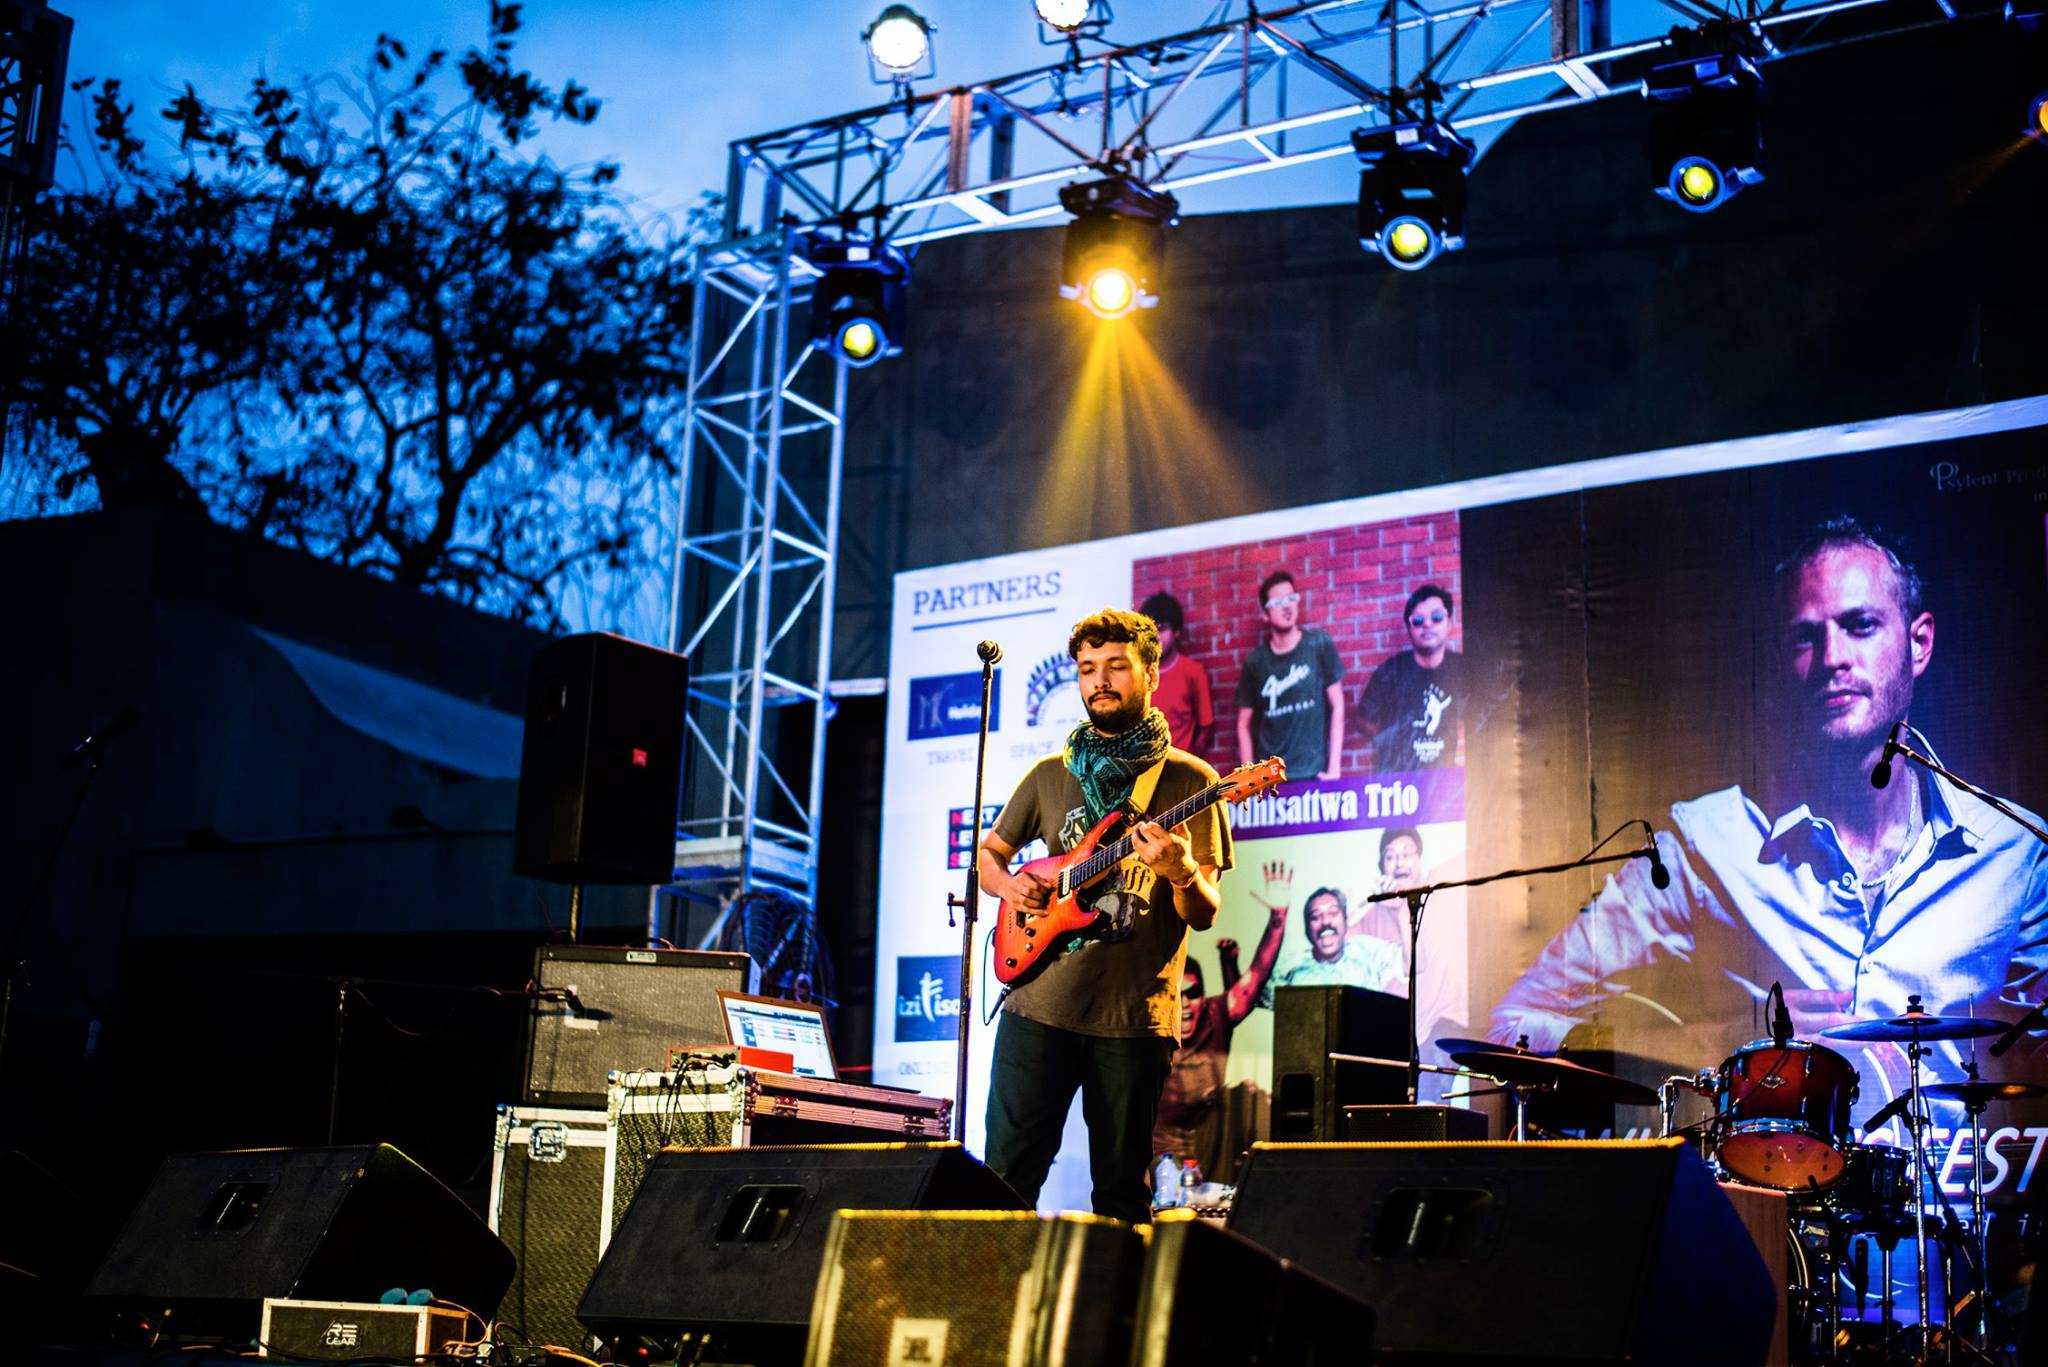 Live at Twin Cities Festival